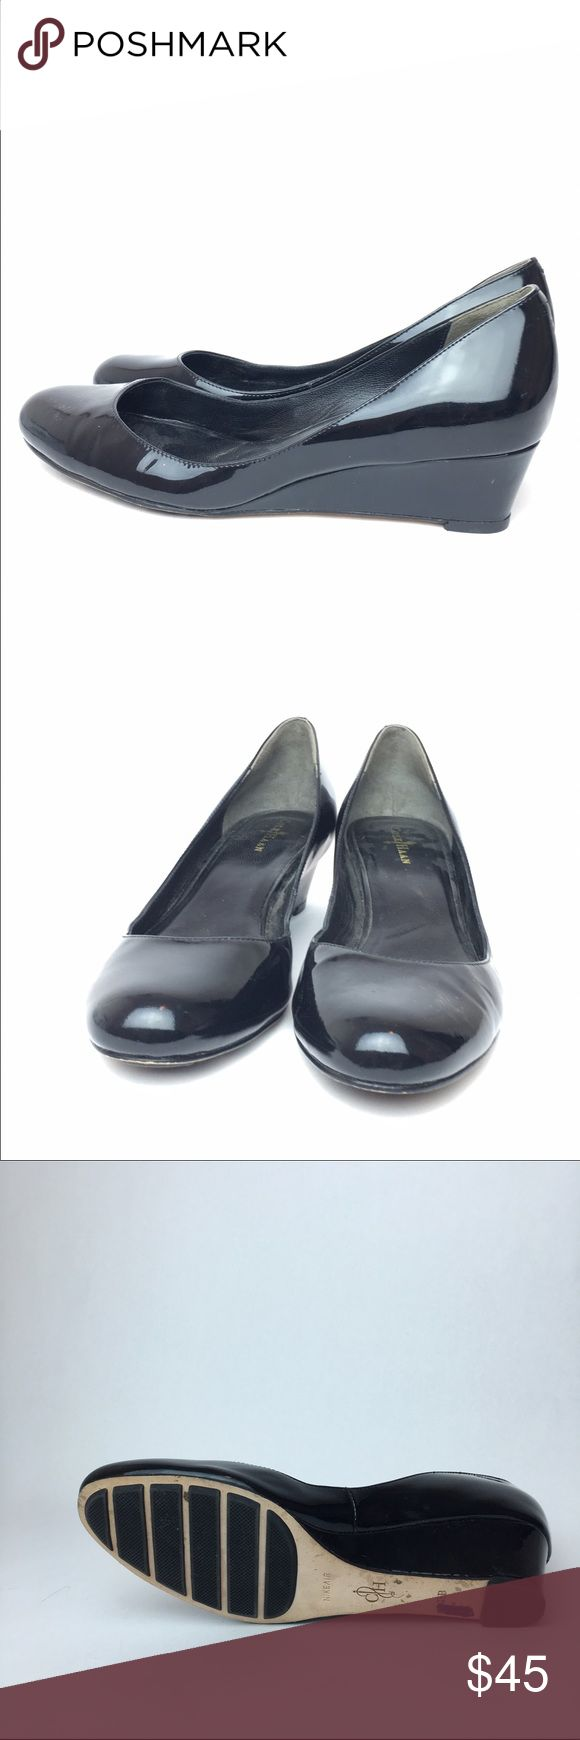 Cole Haan black patent leather wedge 7.5 Good condition, lightly worn. Small dent on the side of one shoe. Pen mark on the bottom. ⛔️NO TRADES ⛔️NO TRY ONS Cole Haan Shoes Wedges